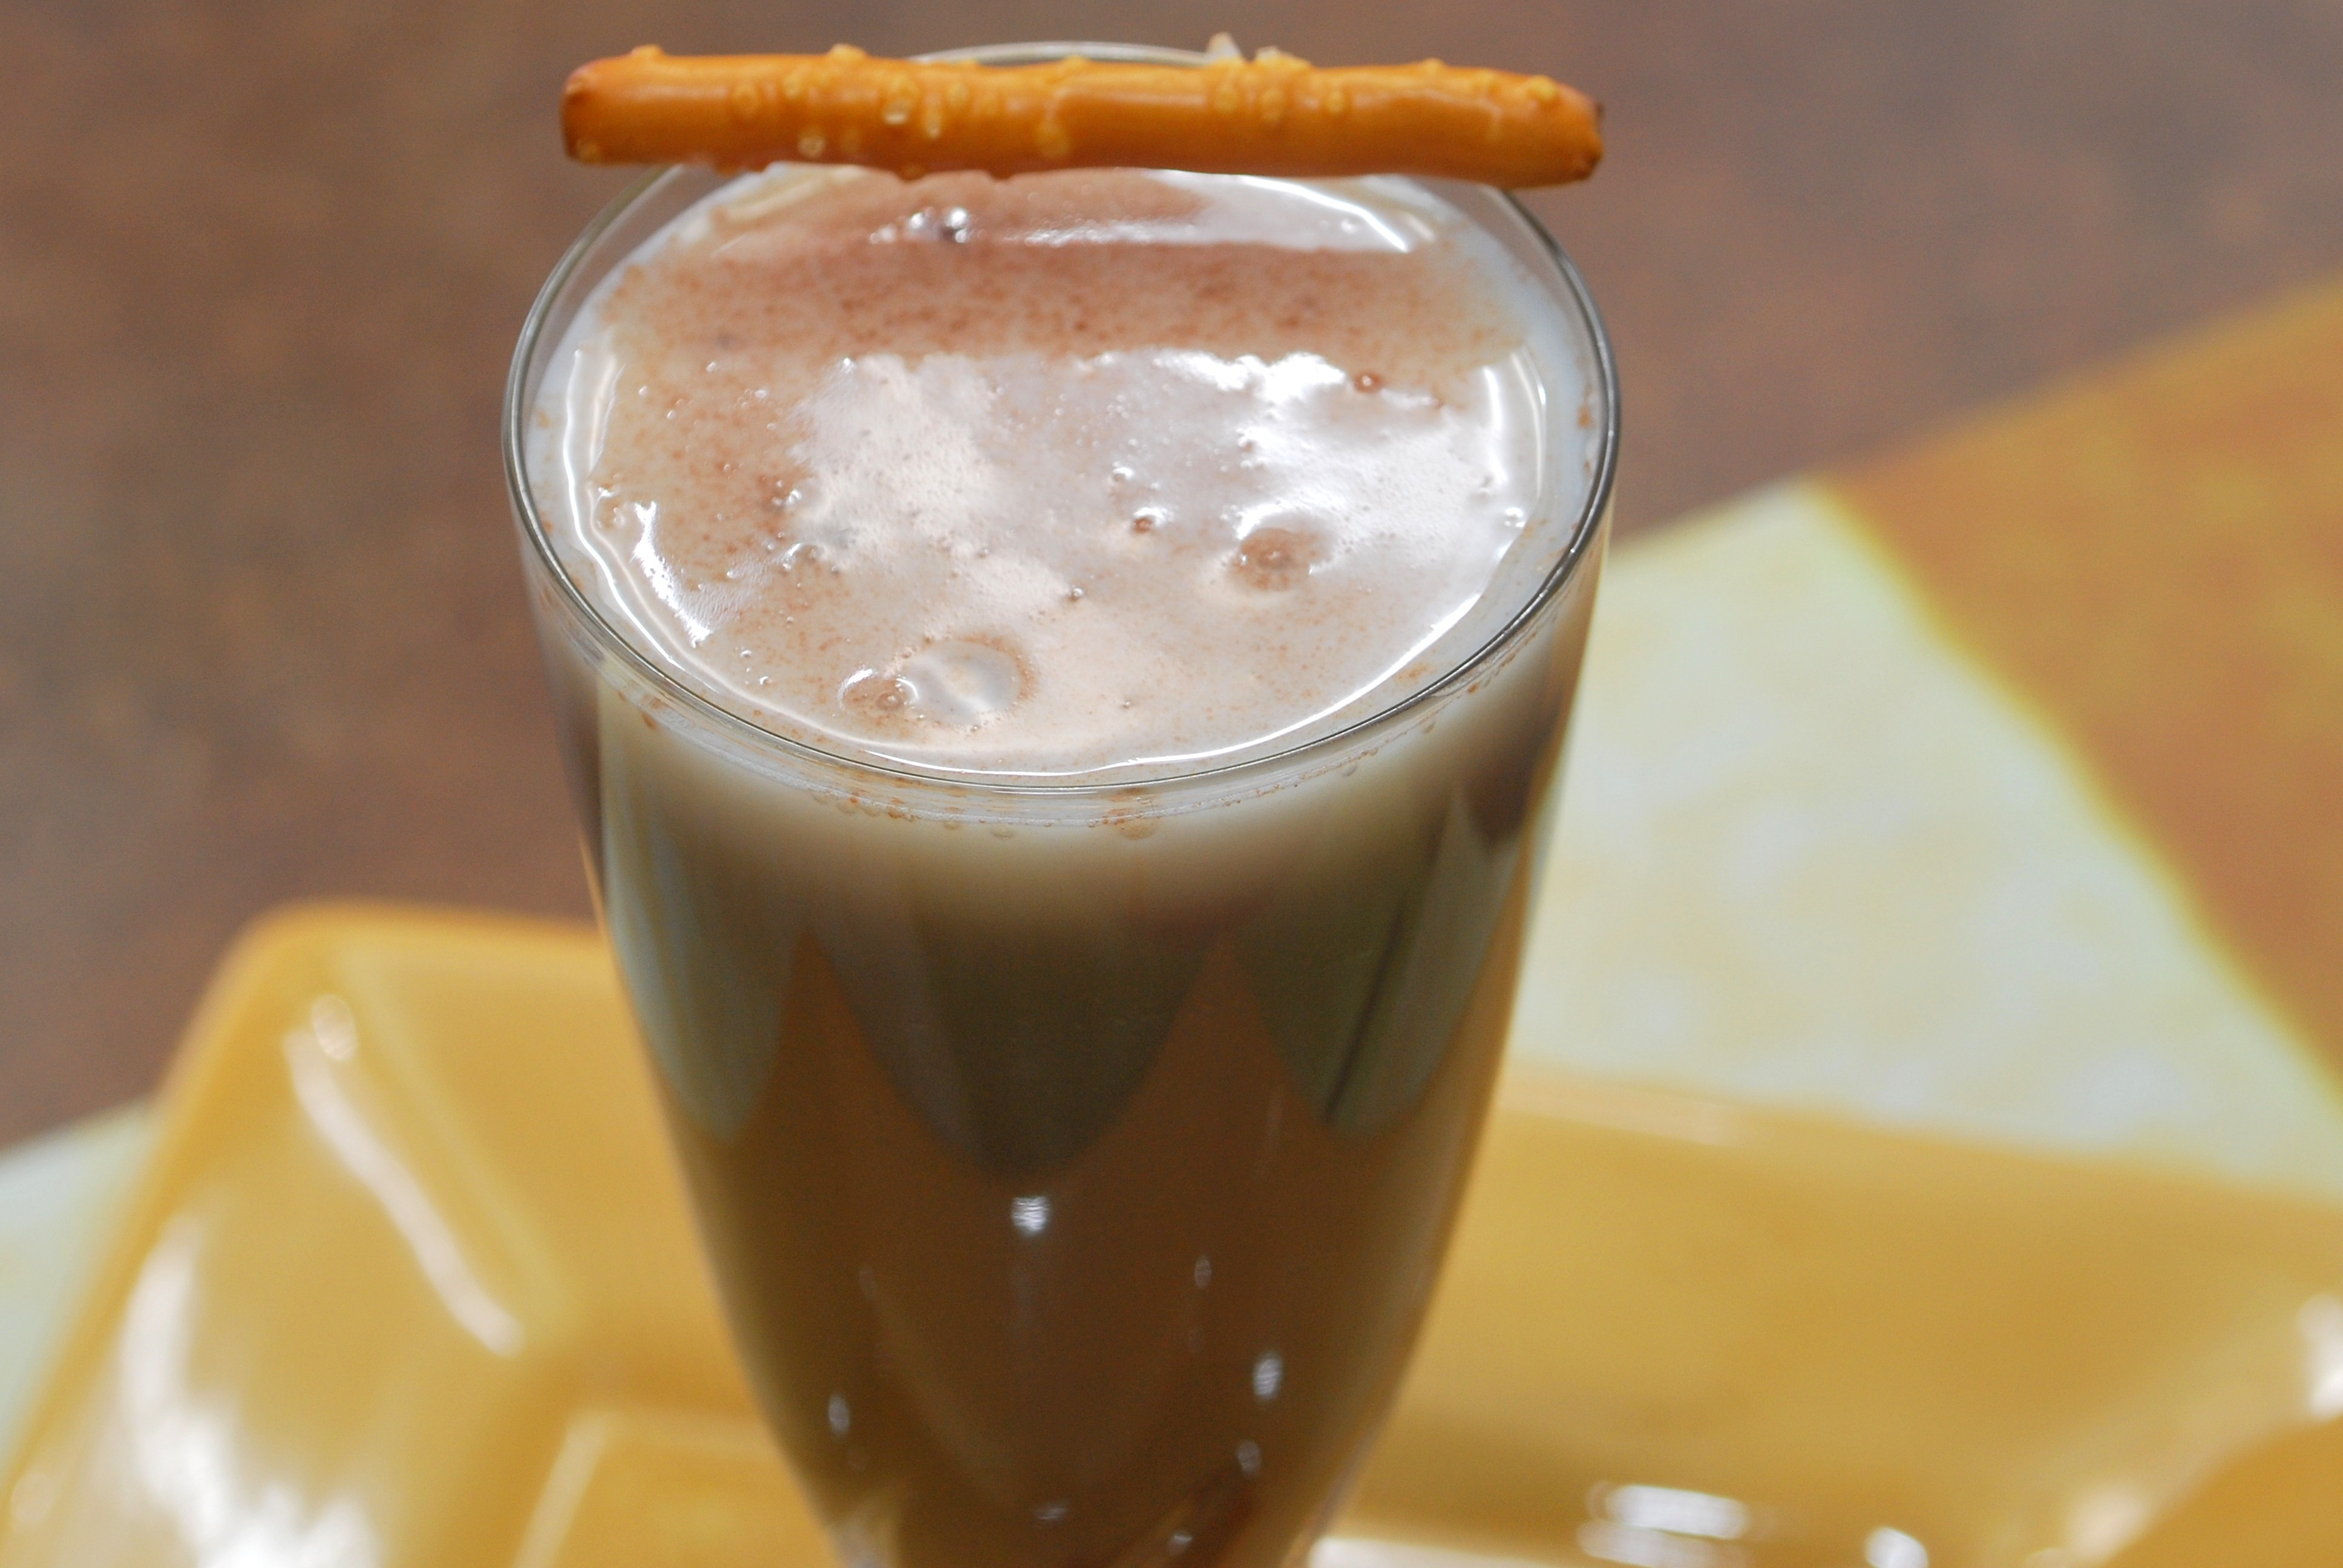 CEimB: Chocolate Egg Cream